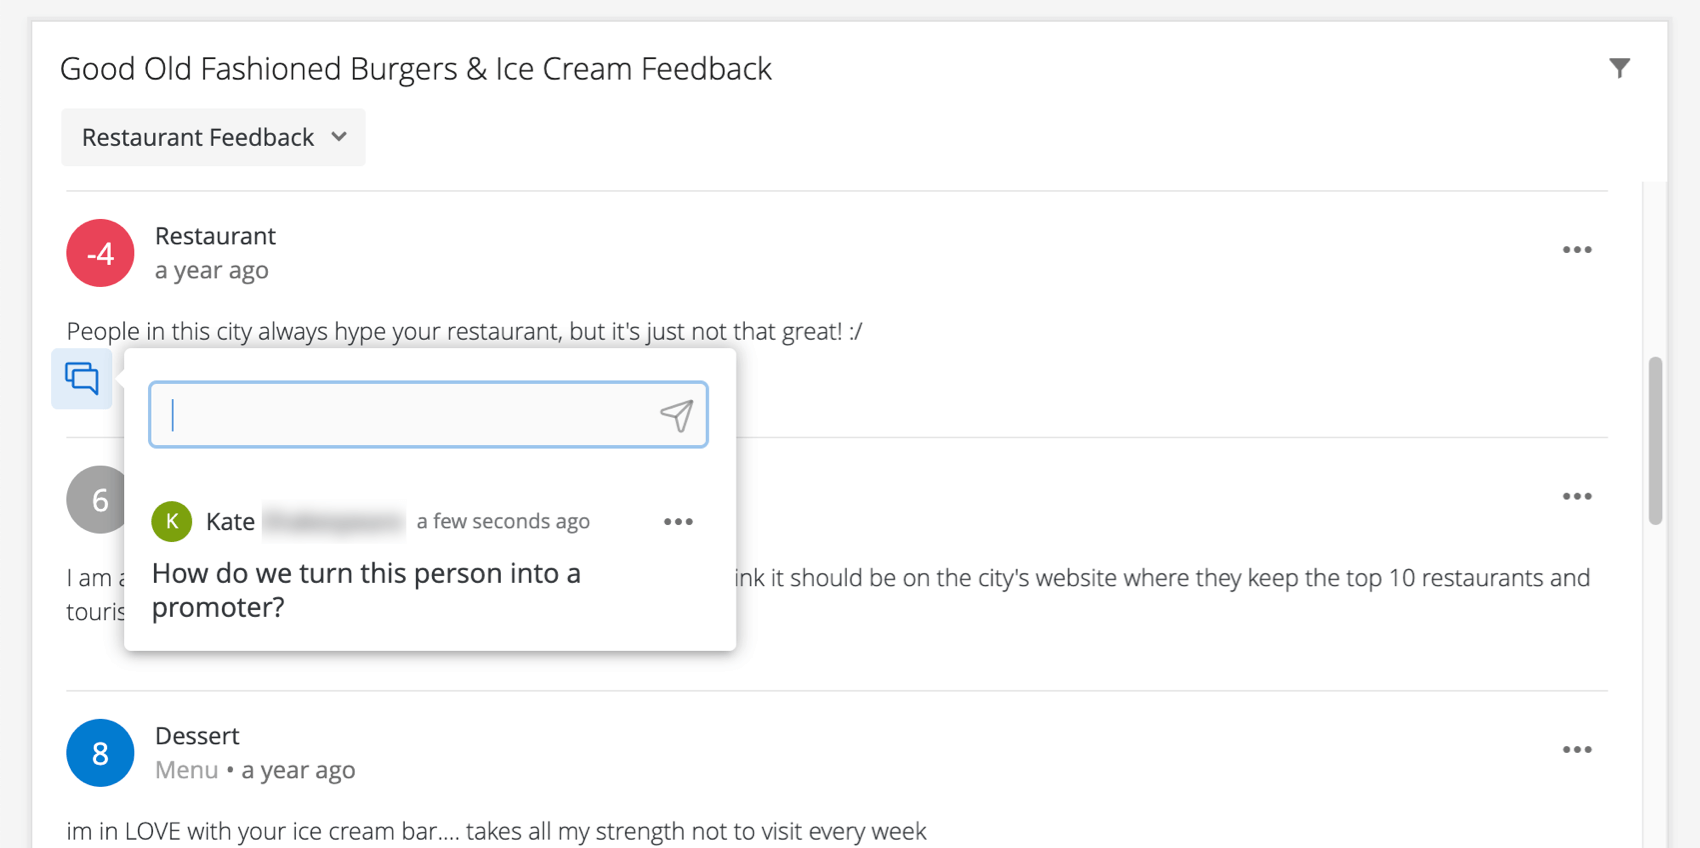 Comment modal showin the comment already left, but also showing a field for another one